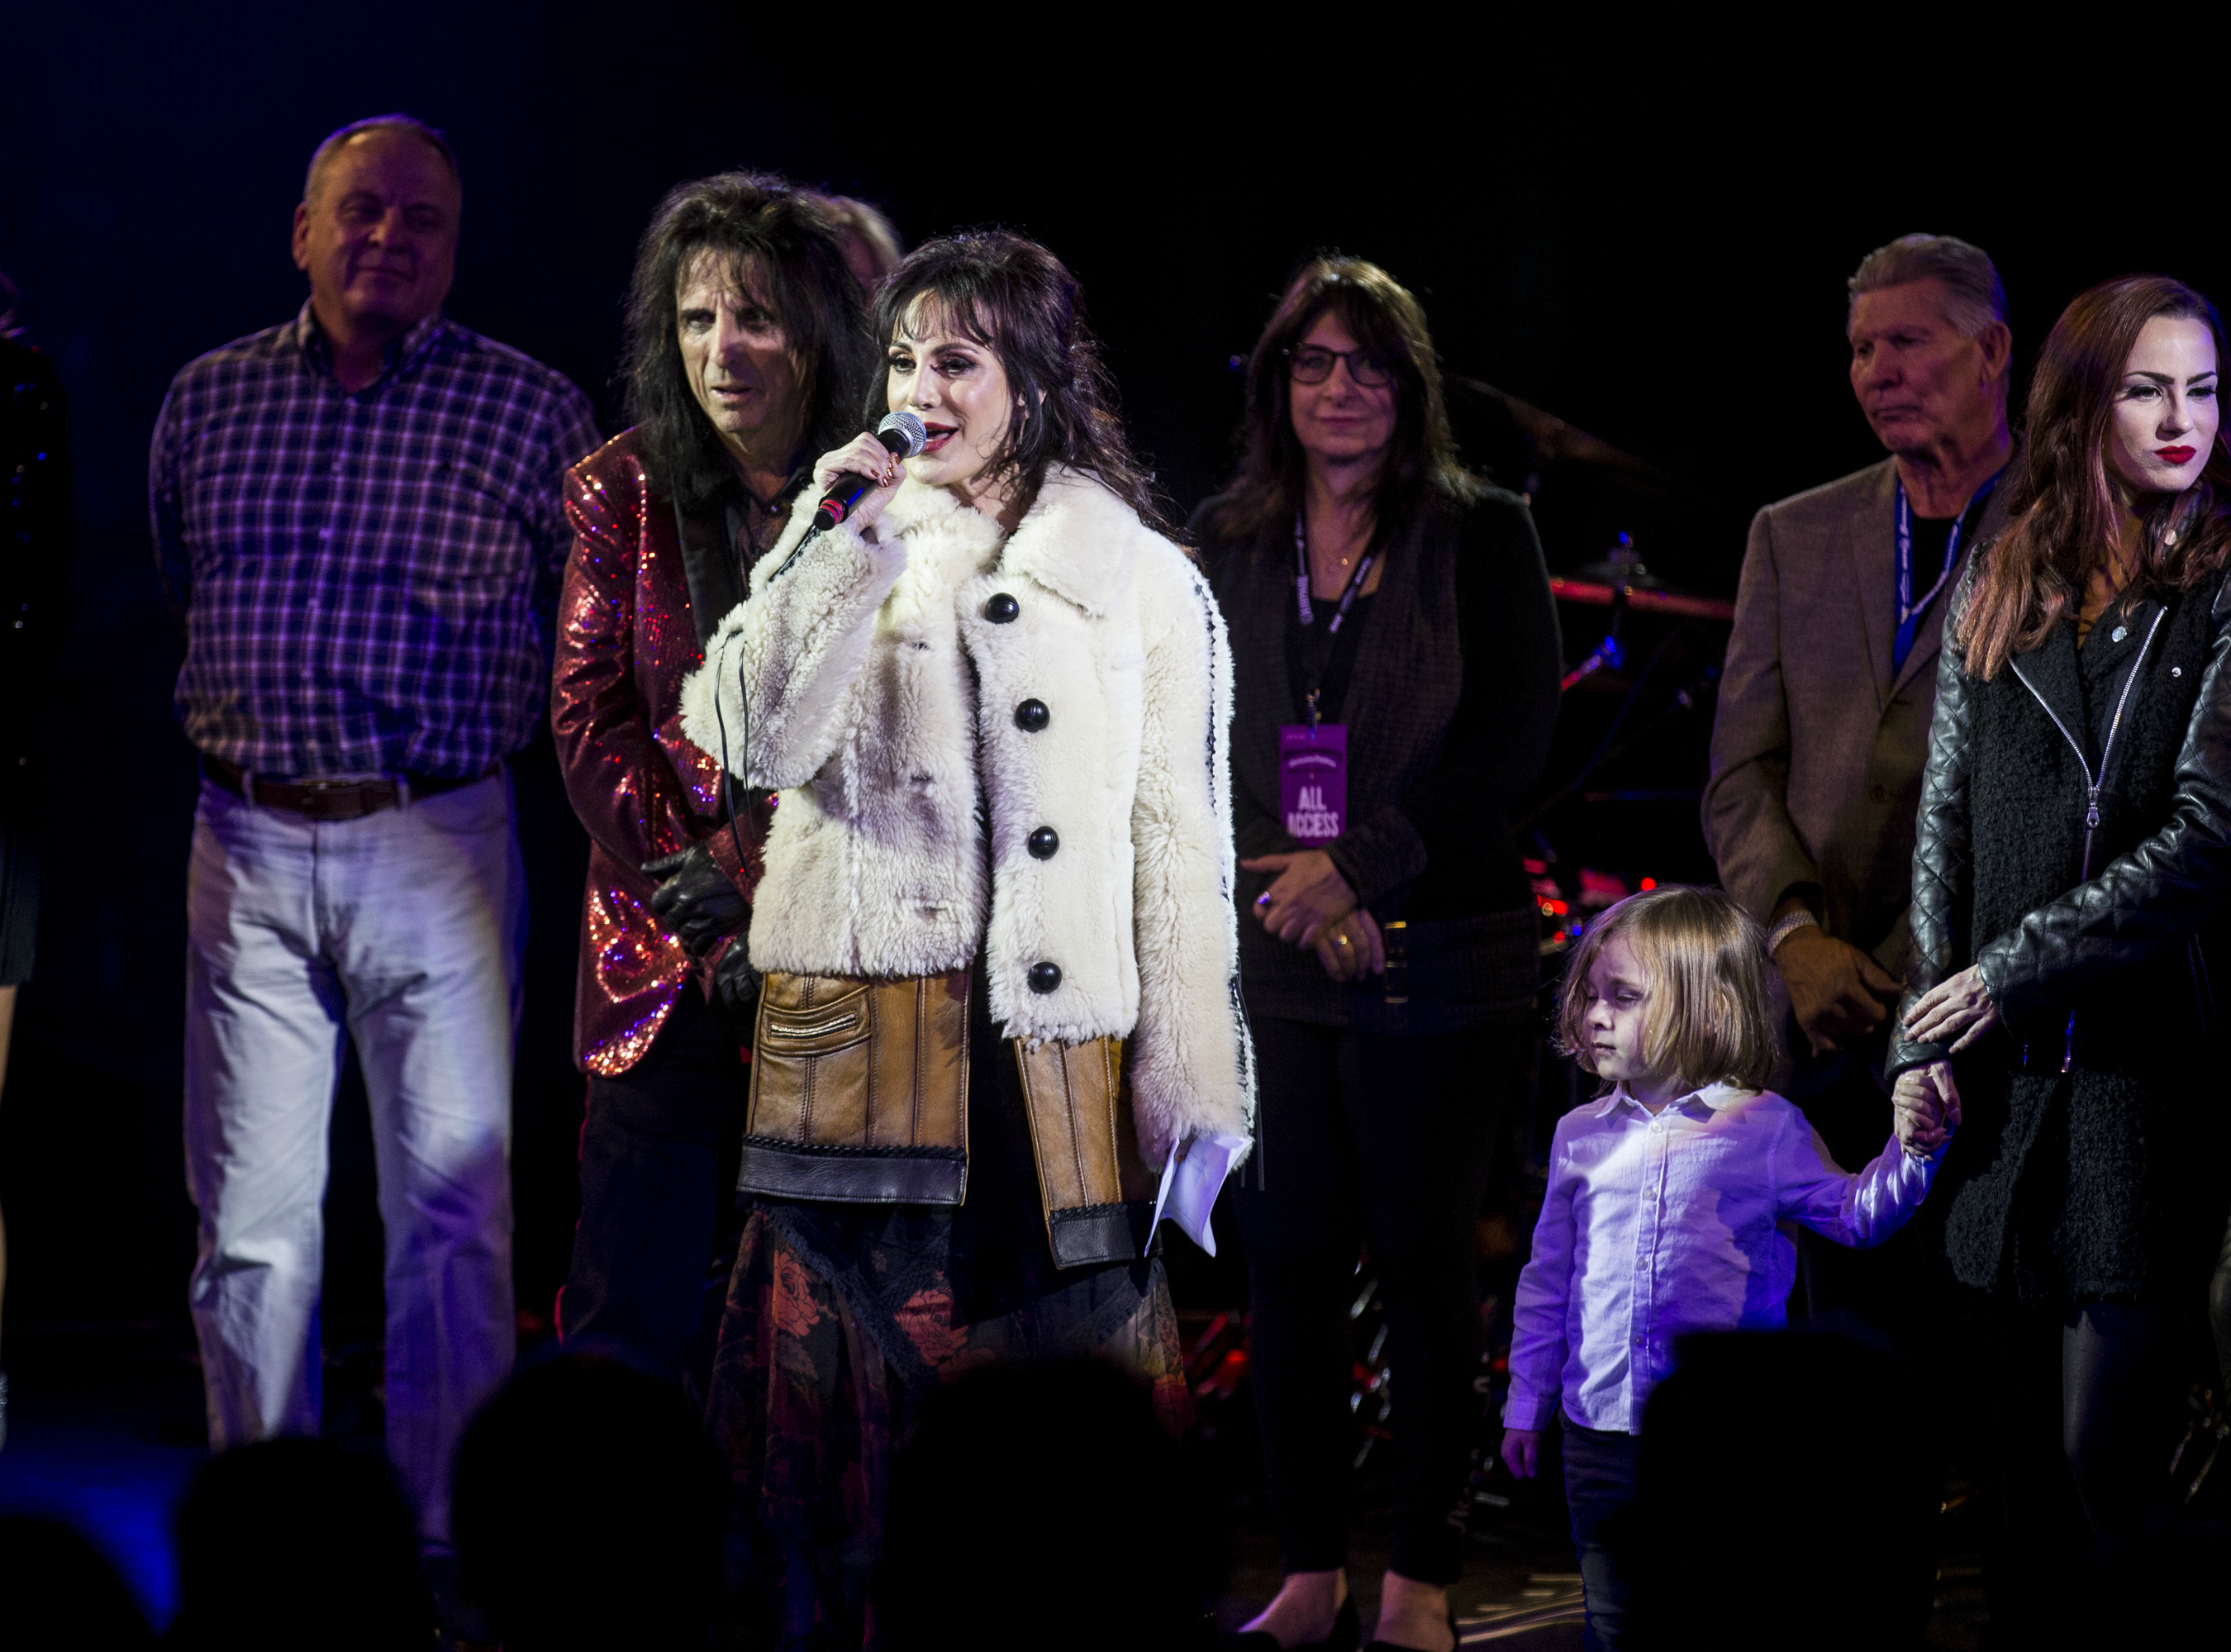 Sheryl Cooper speaks during the 17th annual Alice Cooper's Christmas Pudding concert, Dec. 8, 2018, at Celebrity Theatre in Phoenix.